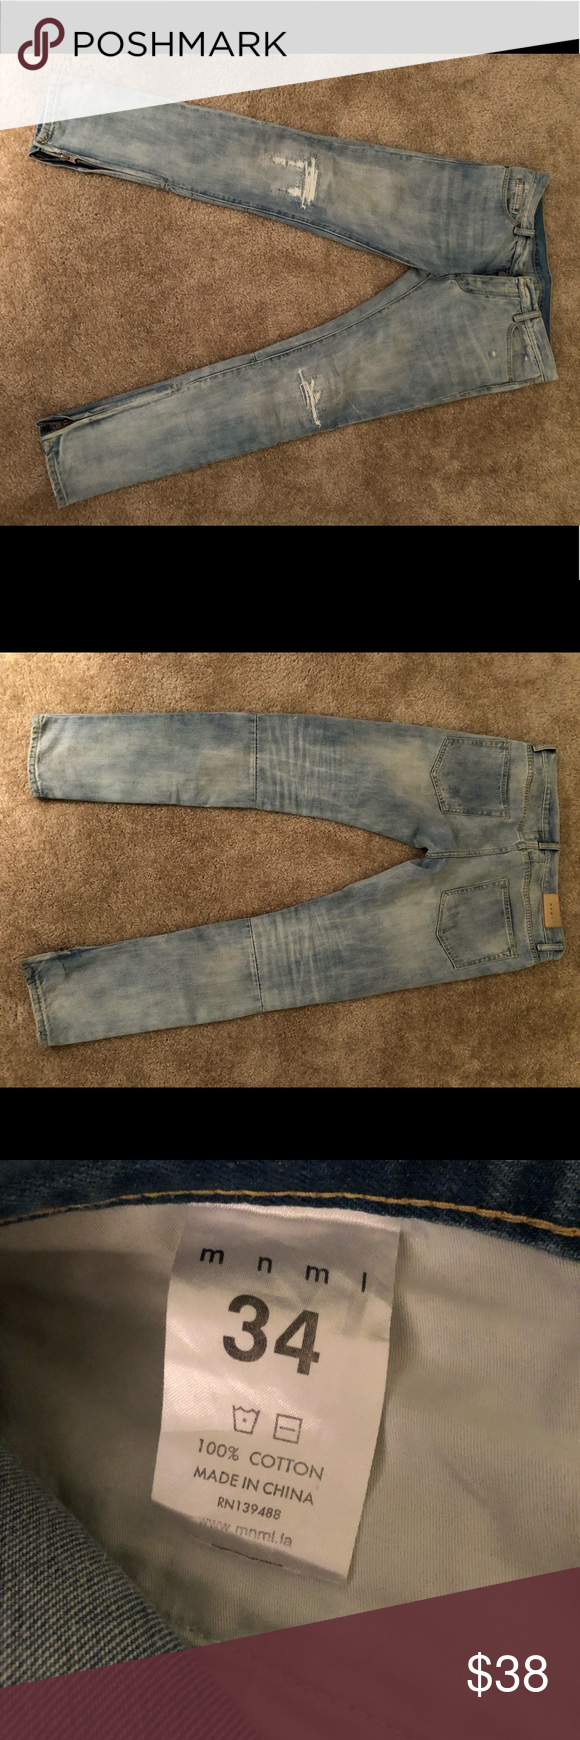 4bc3e252628 Mnml m4 denim Selling a pair of mnml m4 blue denim jeans. Like new condition.  mnml Jeans Skinny